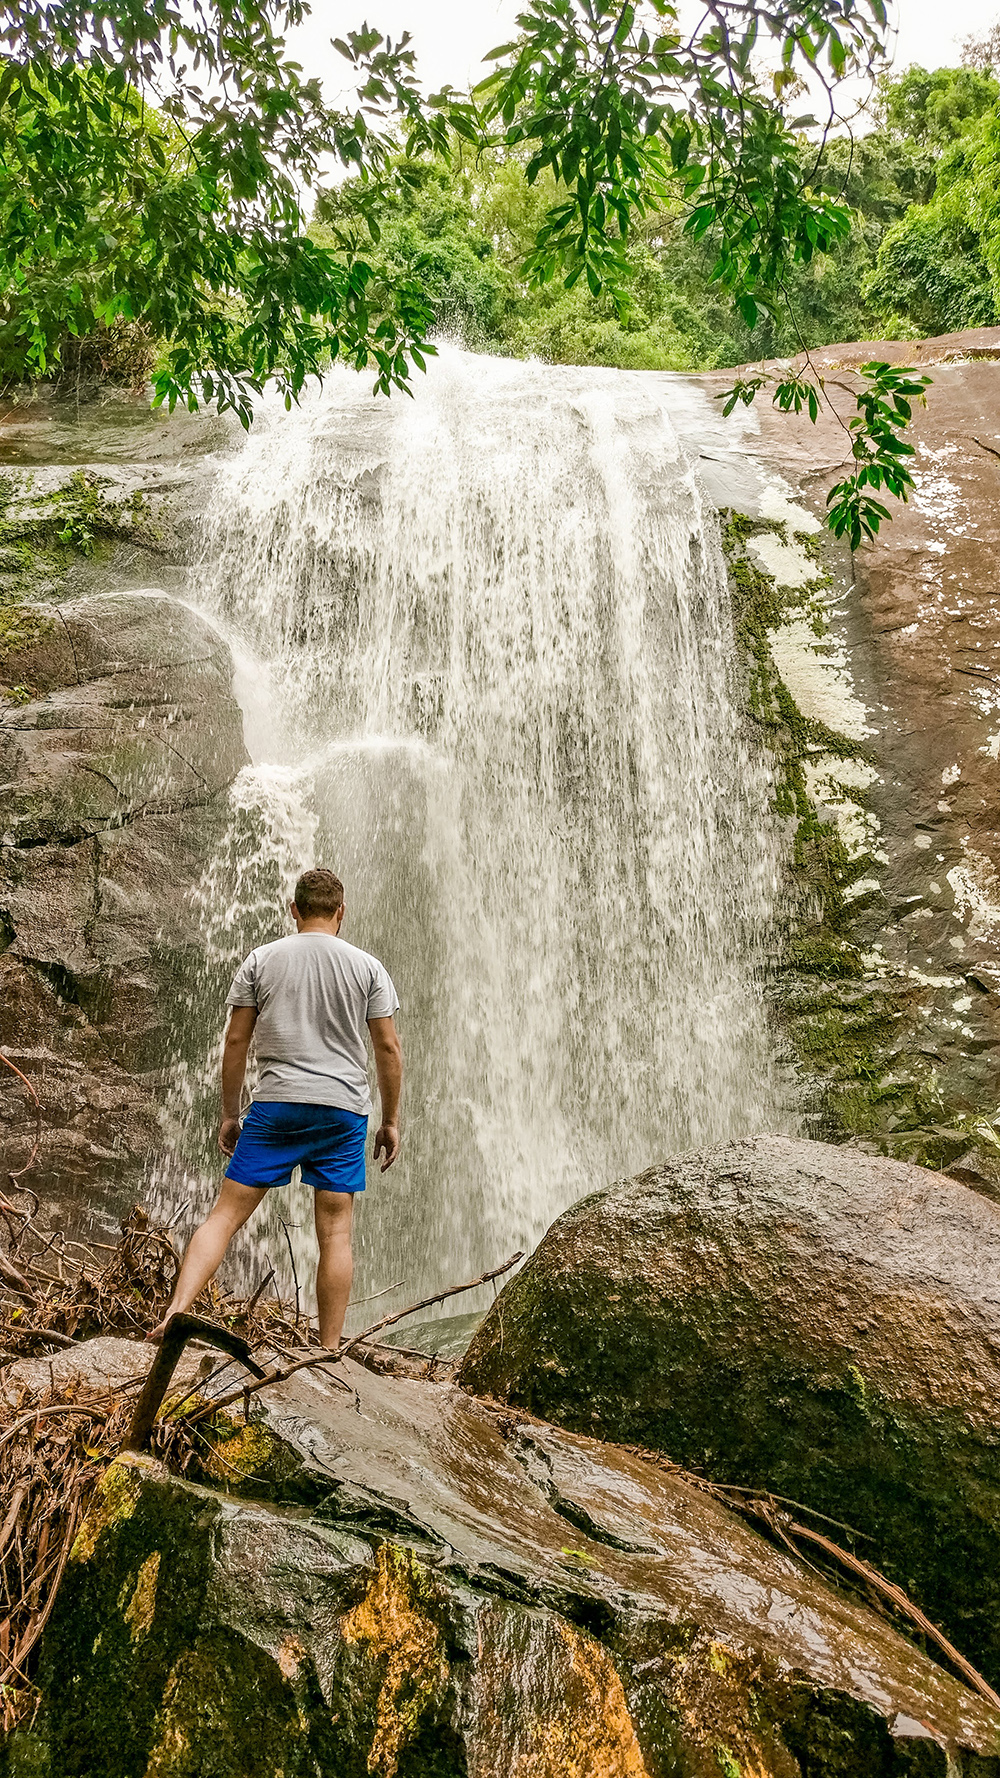 3rd drop of Cachoeira 3 tombos - How to spend 3 days in Ilhabela, Brazil? | Aliz's Wonderland